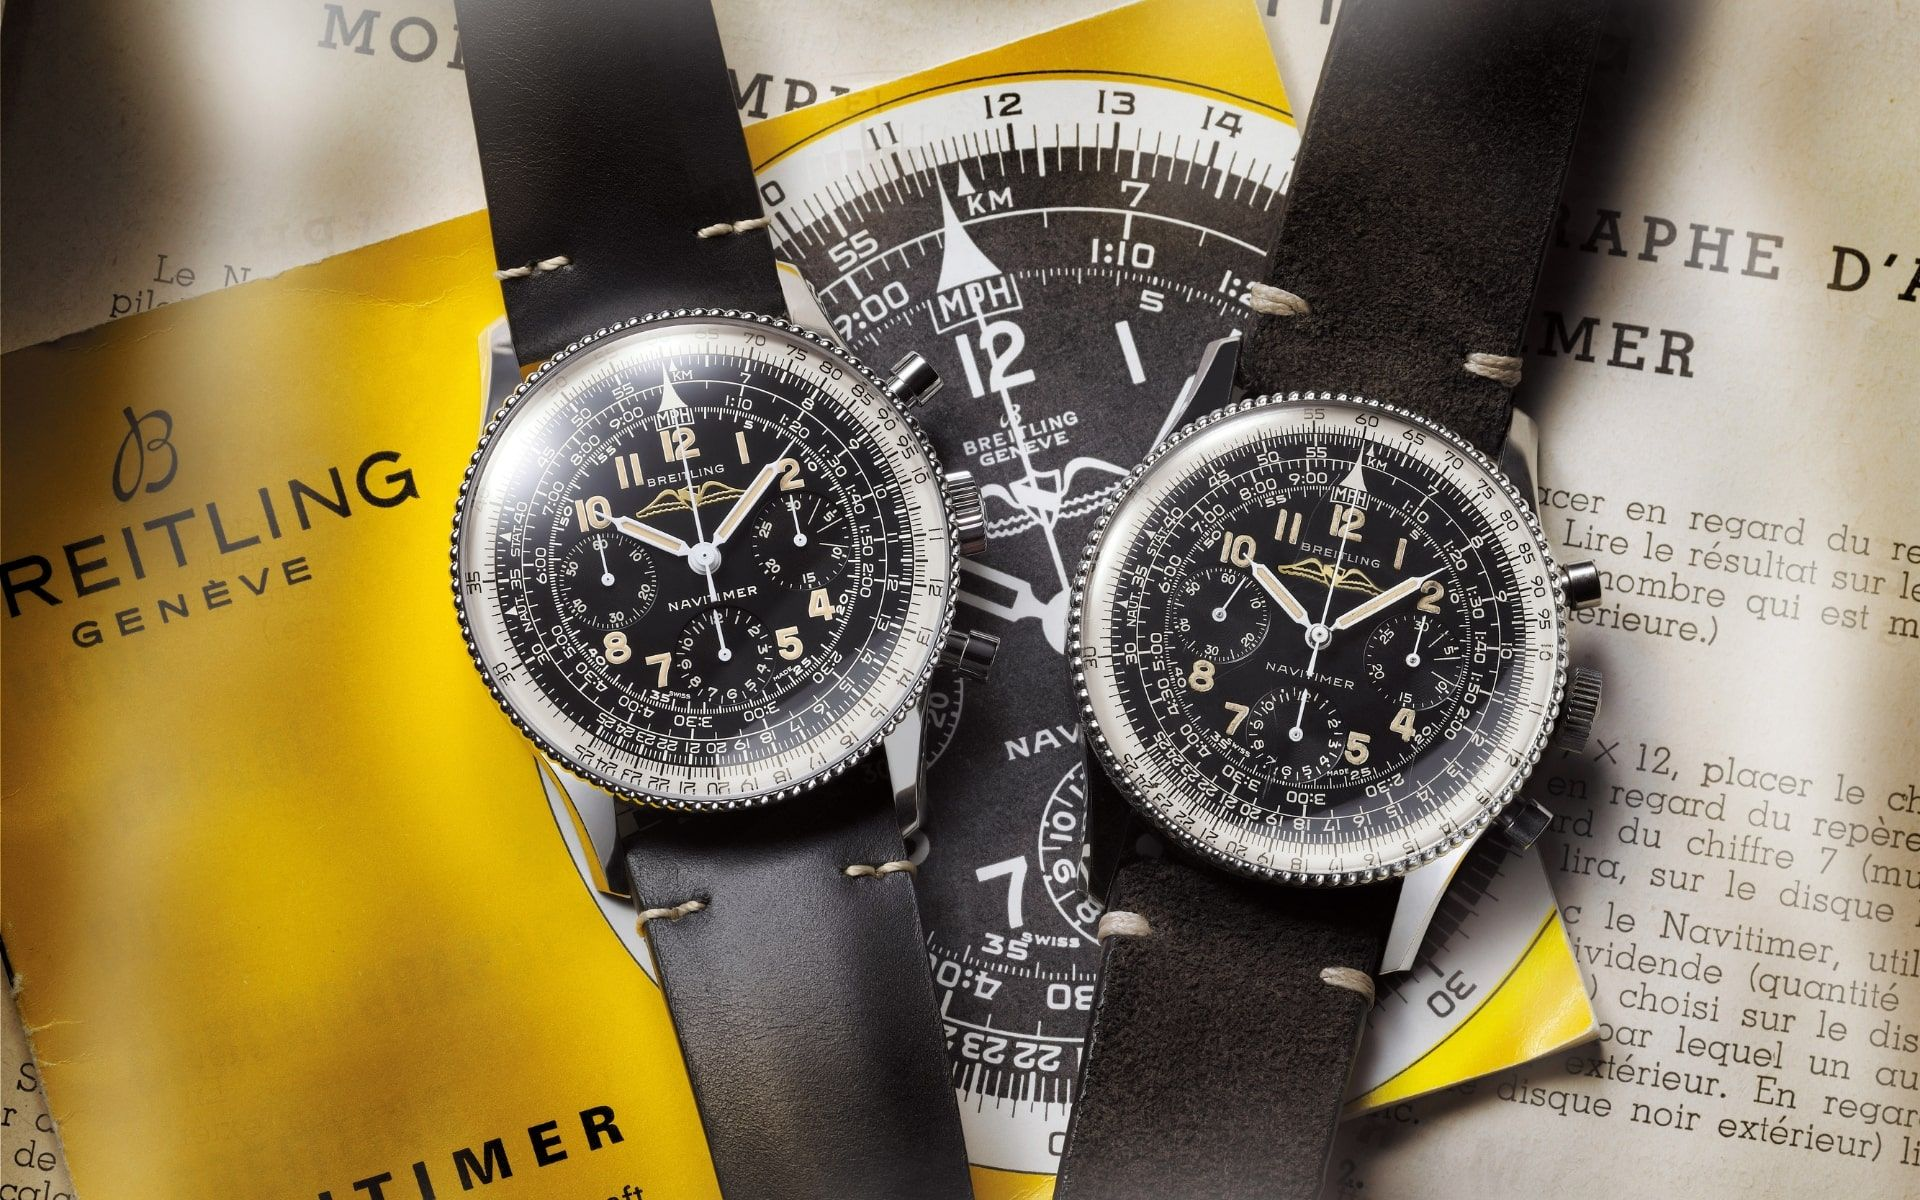 The 1959 Re-Edition (left) and the original watch from 1959